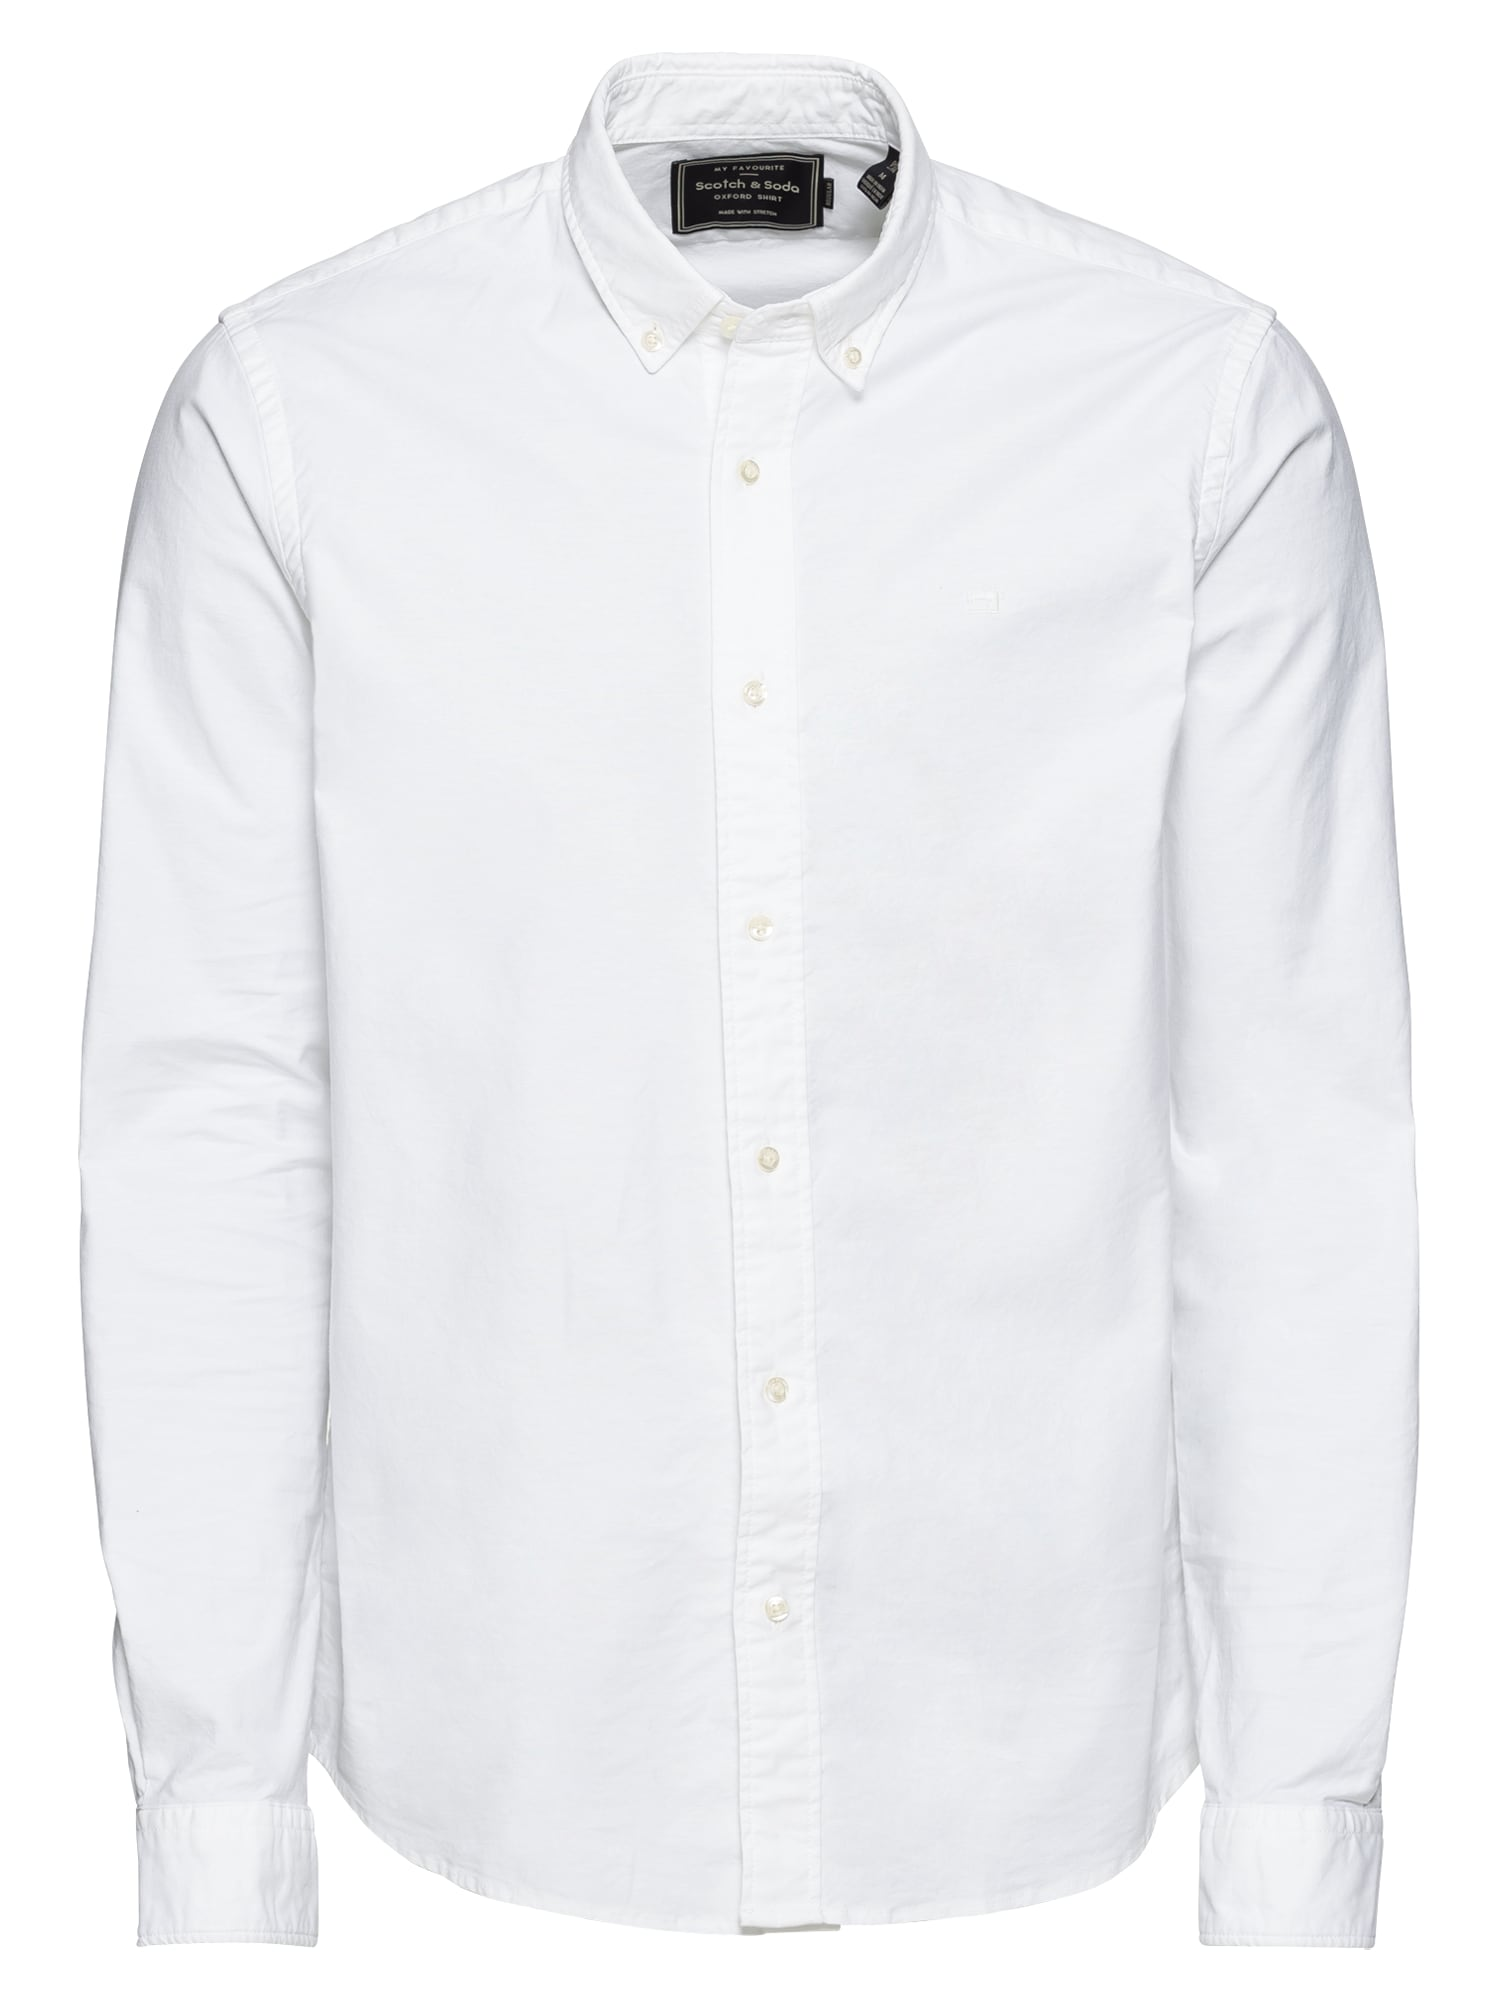 SCOTCH & SODA Cămașă 'NOS Shirt with contrast details'  alb